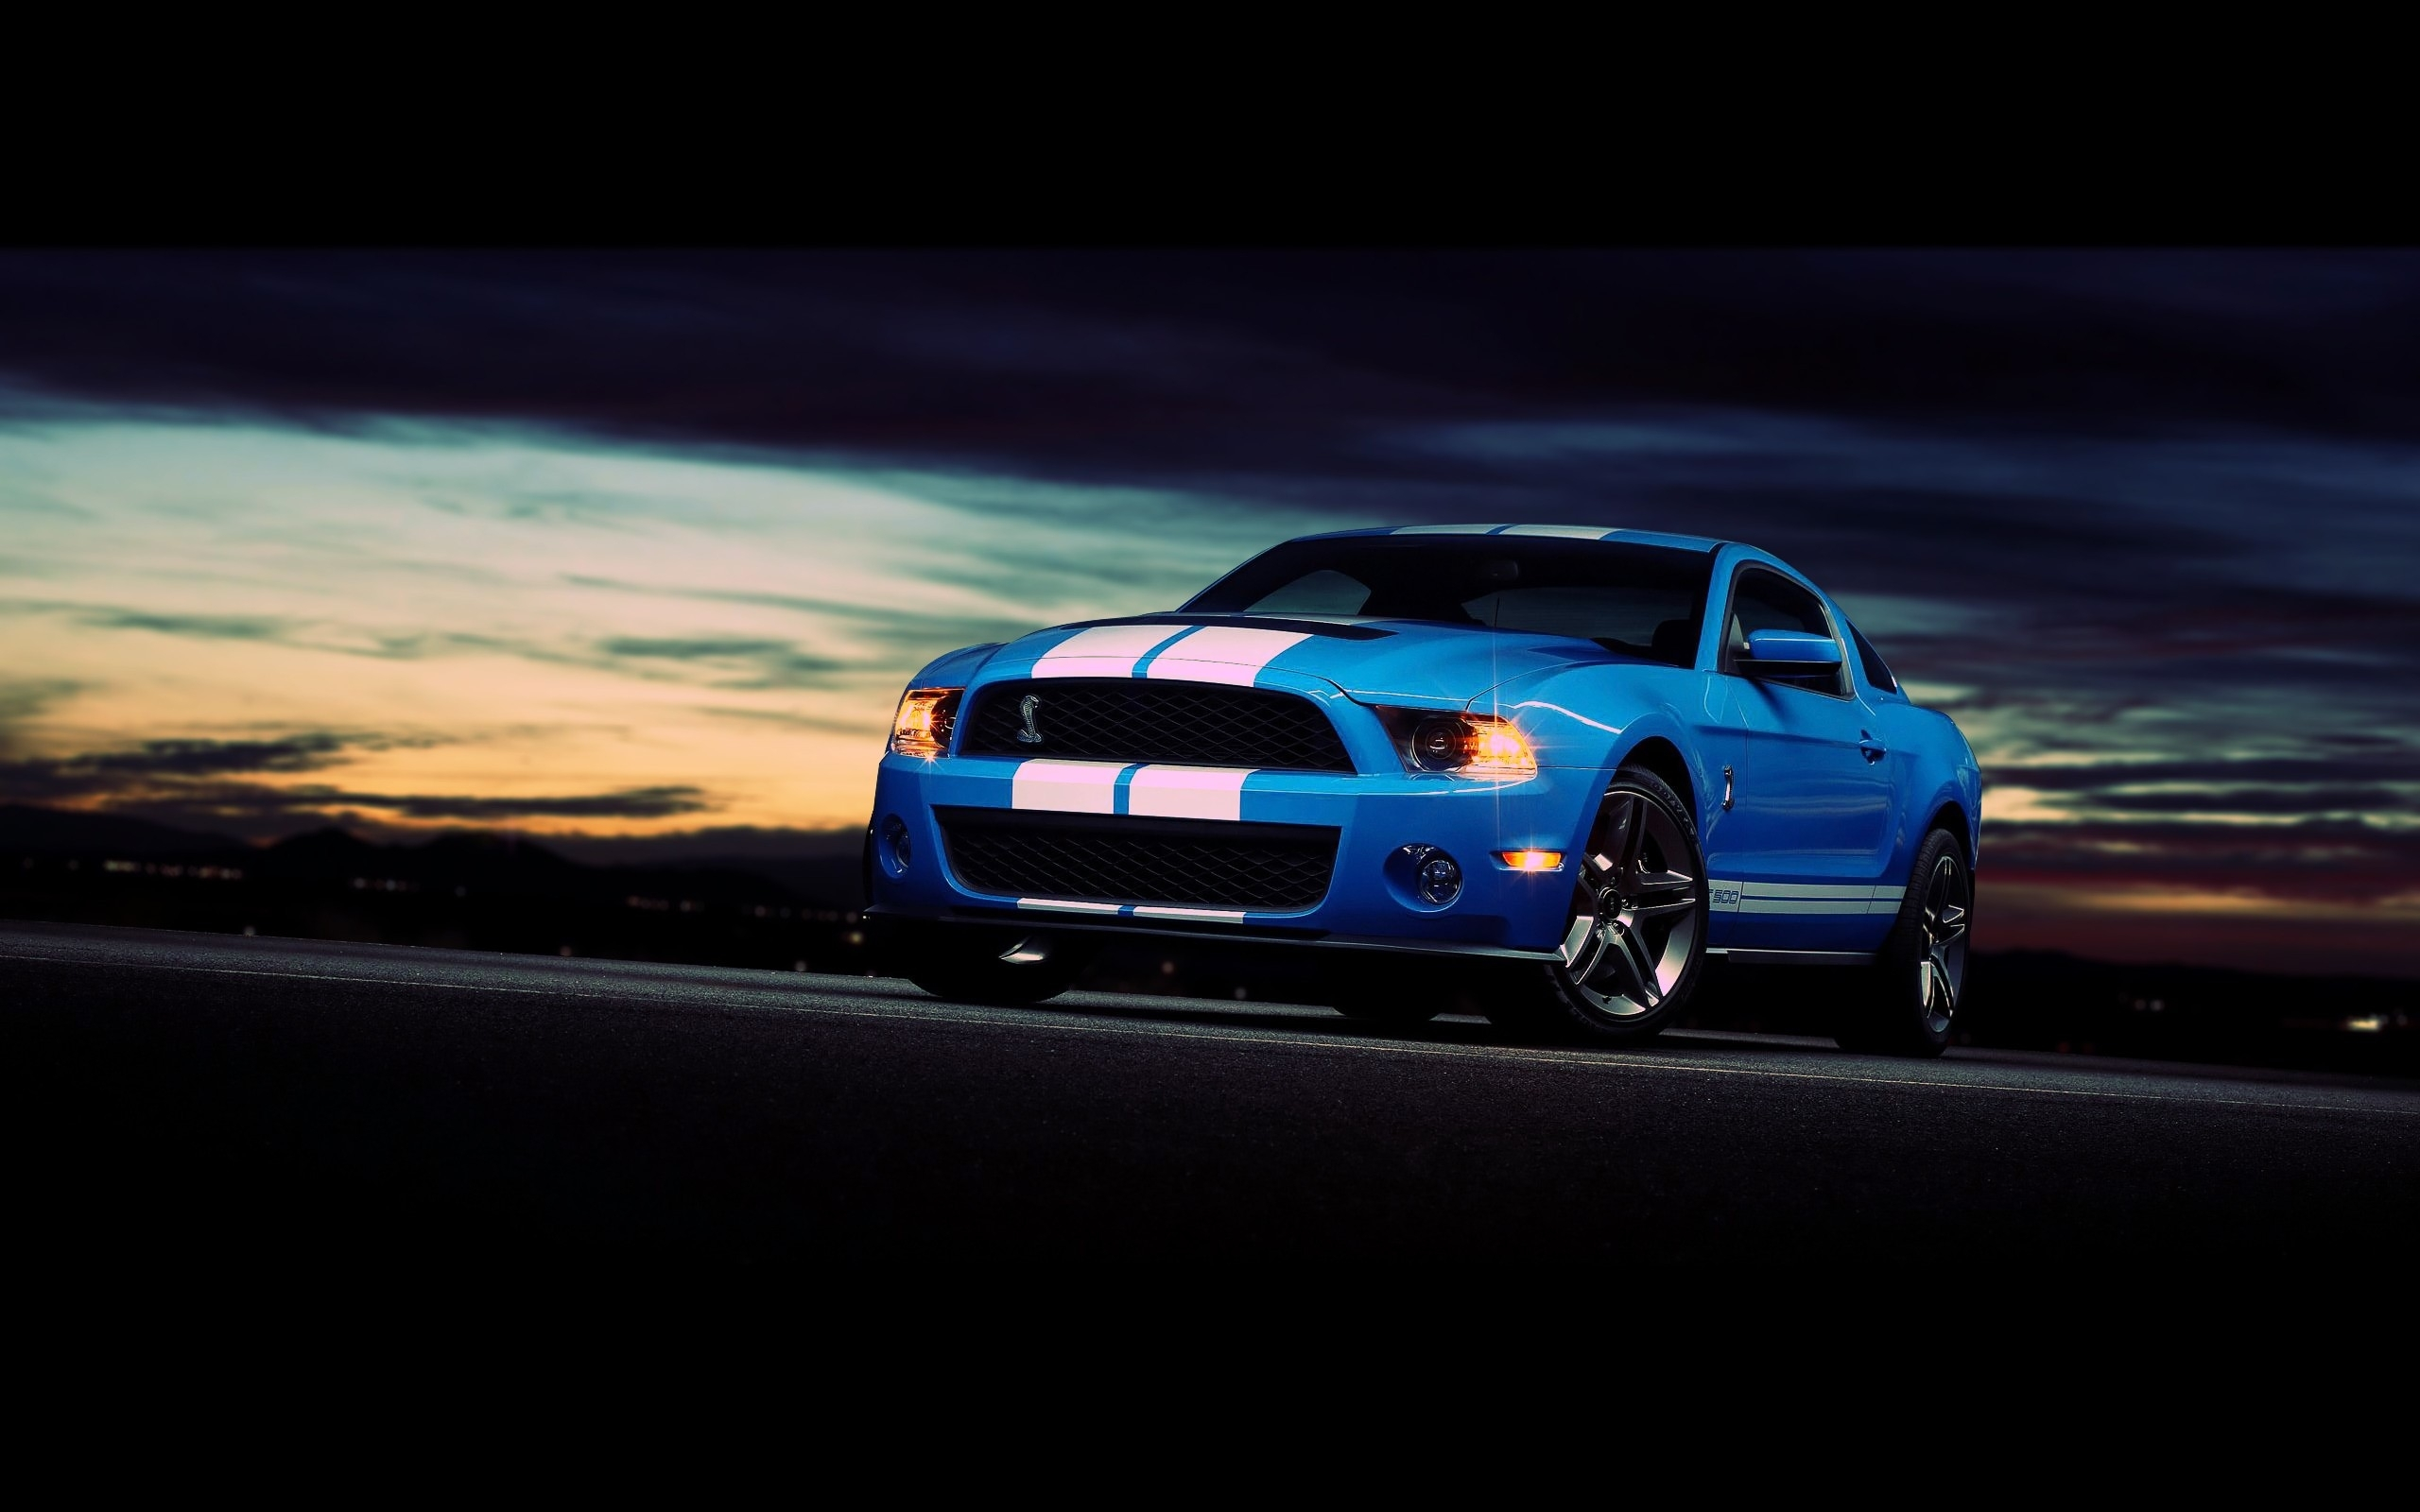 Ford Mustang Shelby GT500 Computer Wallpapers Desktop Backgrounds 2560x1600